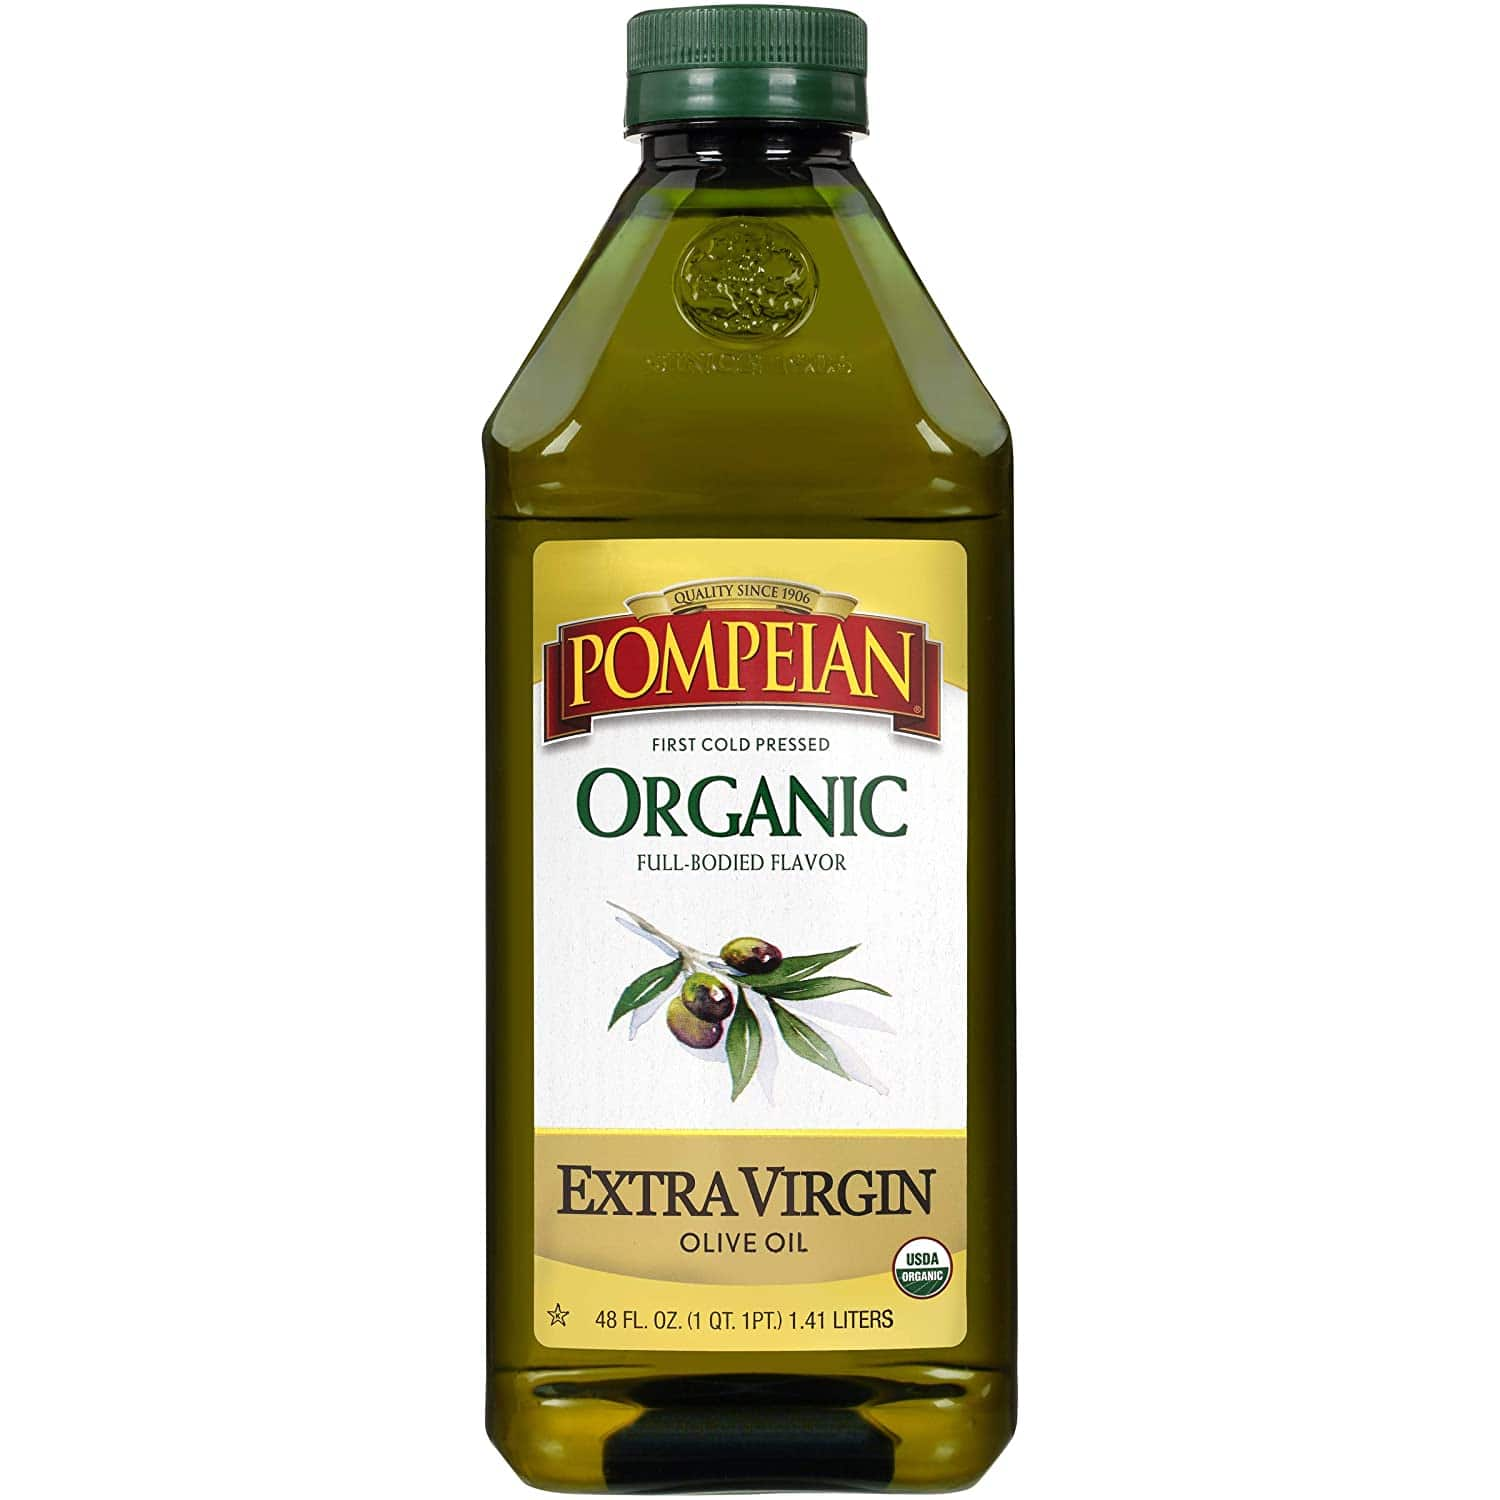 48oz Pompeian Organic Extra Virgin Olive Oil S&S $9 or $8.06 $9.01